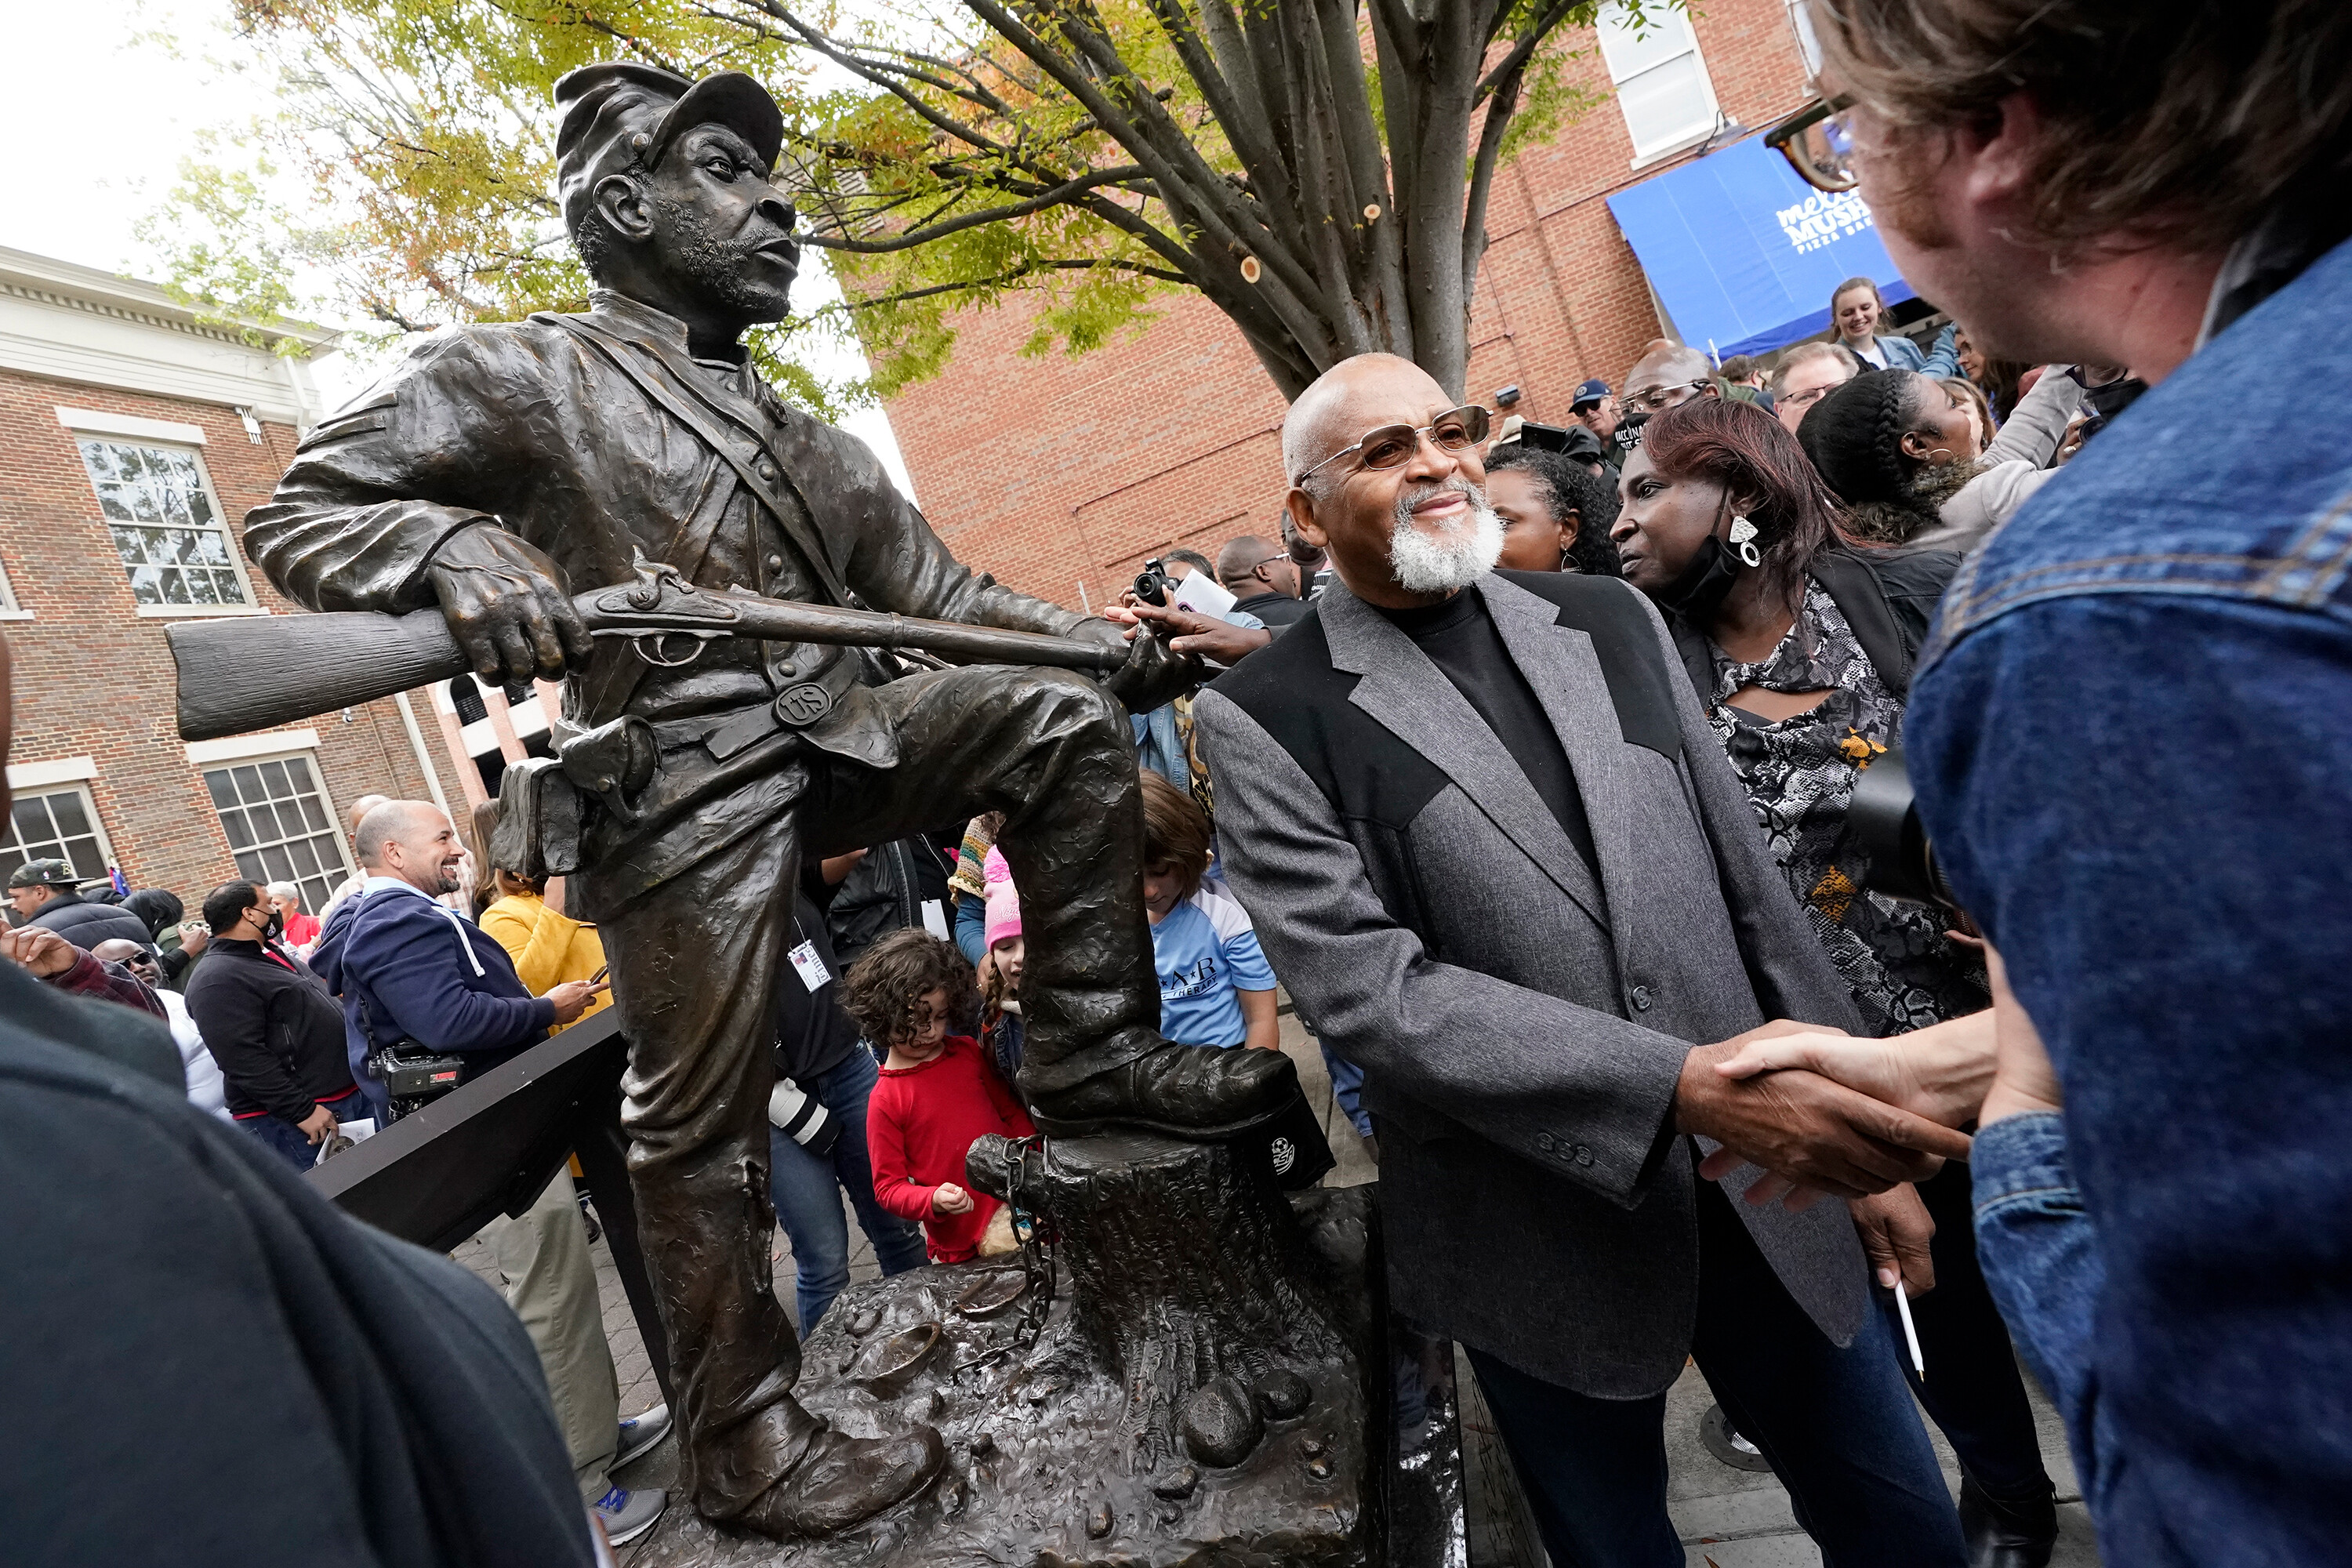 A statue honoring the US Colored Troops was unveiled across the street from a Confederate monument in Tennessee